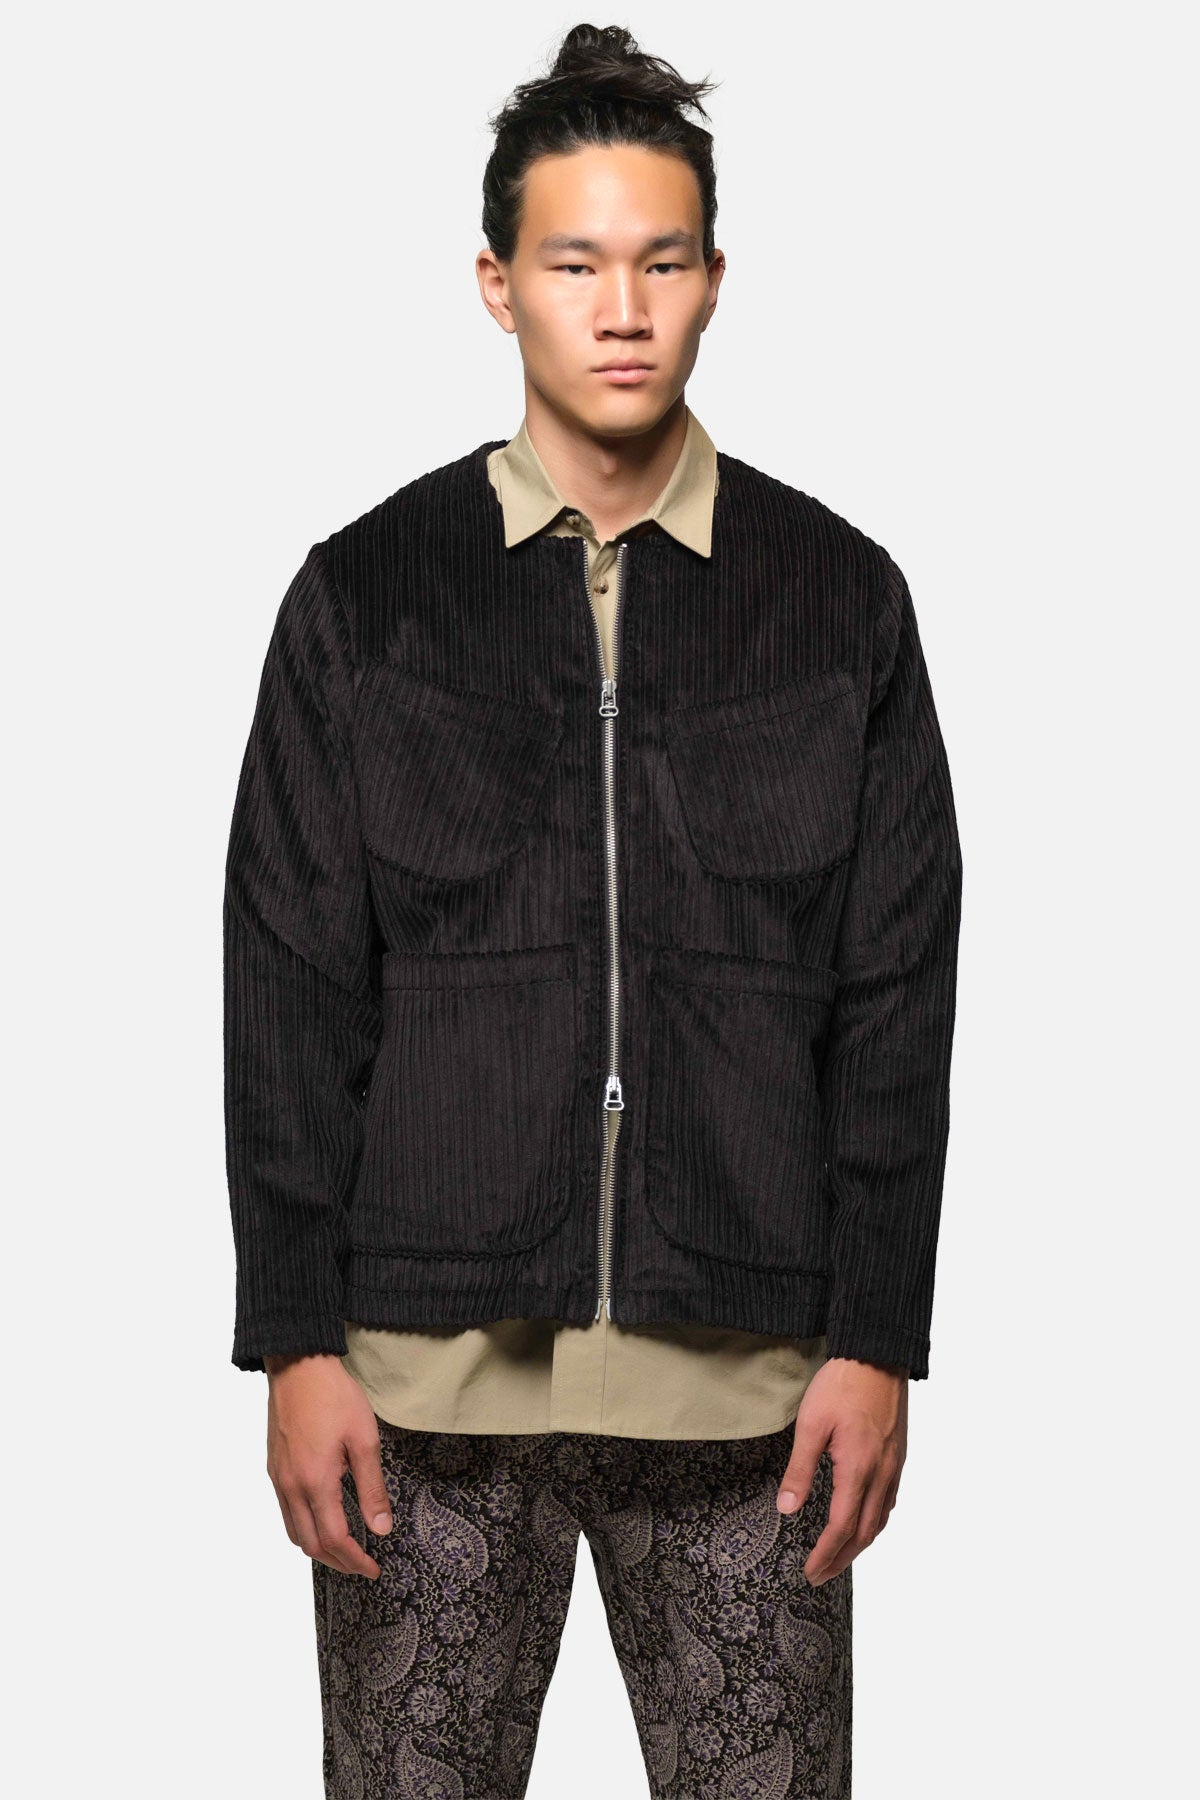 LINCOLN JACKET IN BLACK Hi-Lo CORDUROY - Fortune Goods